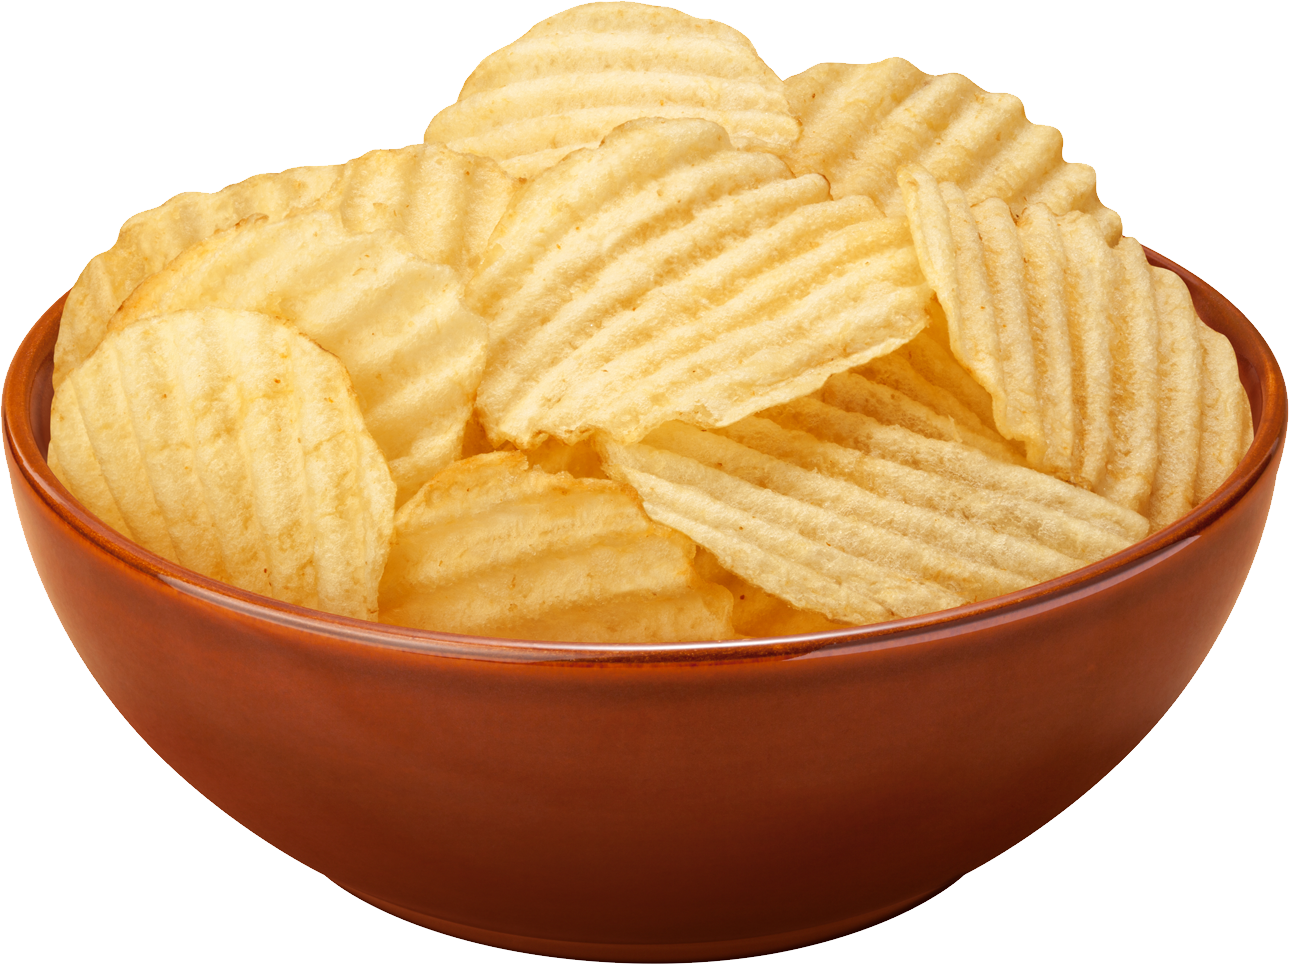 Bowl of chips clipart png image free download Potato Chips Png - Bowl Of Potato Chips Png , Transparent Cartoon ... image free download